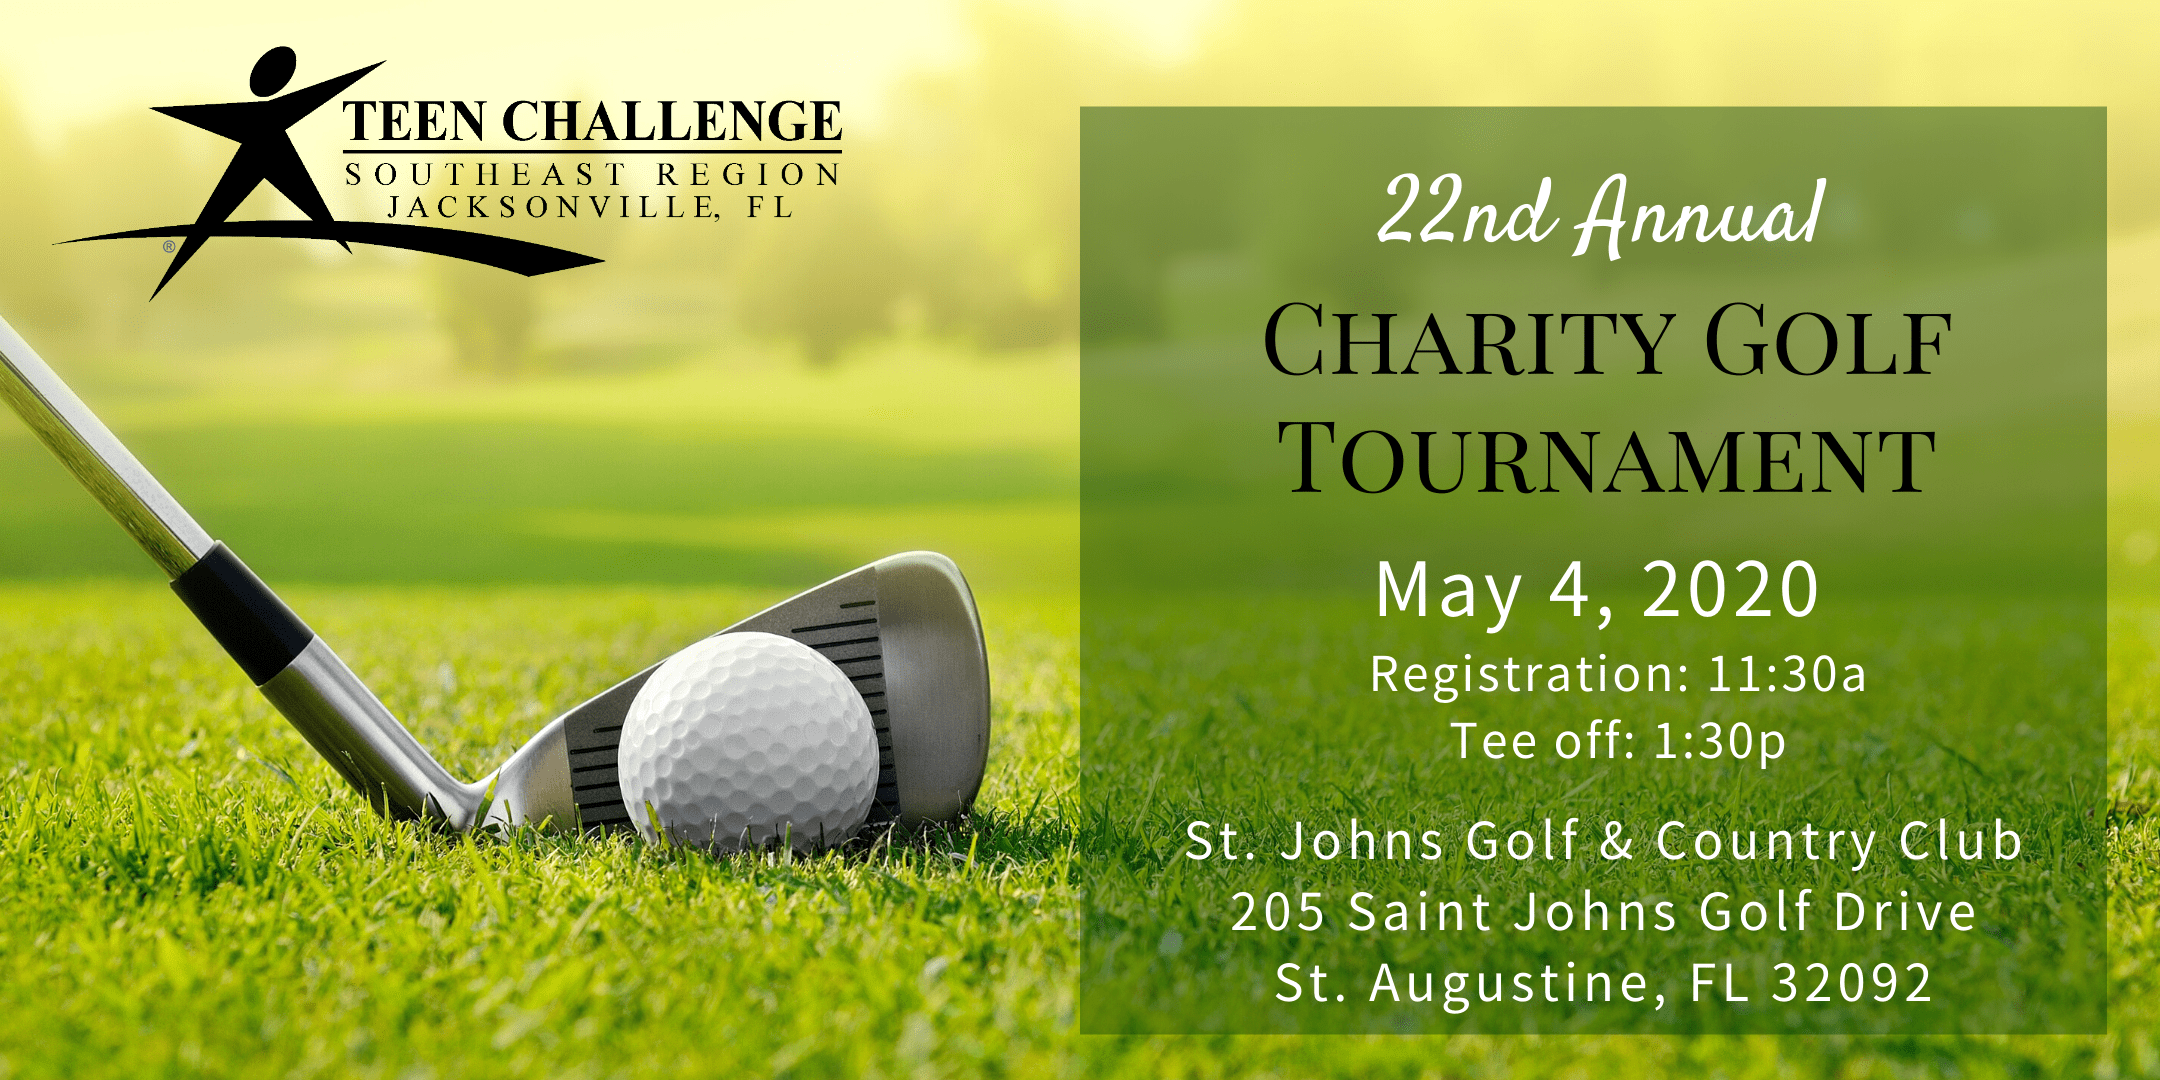 Teen Challenge Jacksonville 22nd Annual Charity Golf Tournament